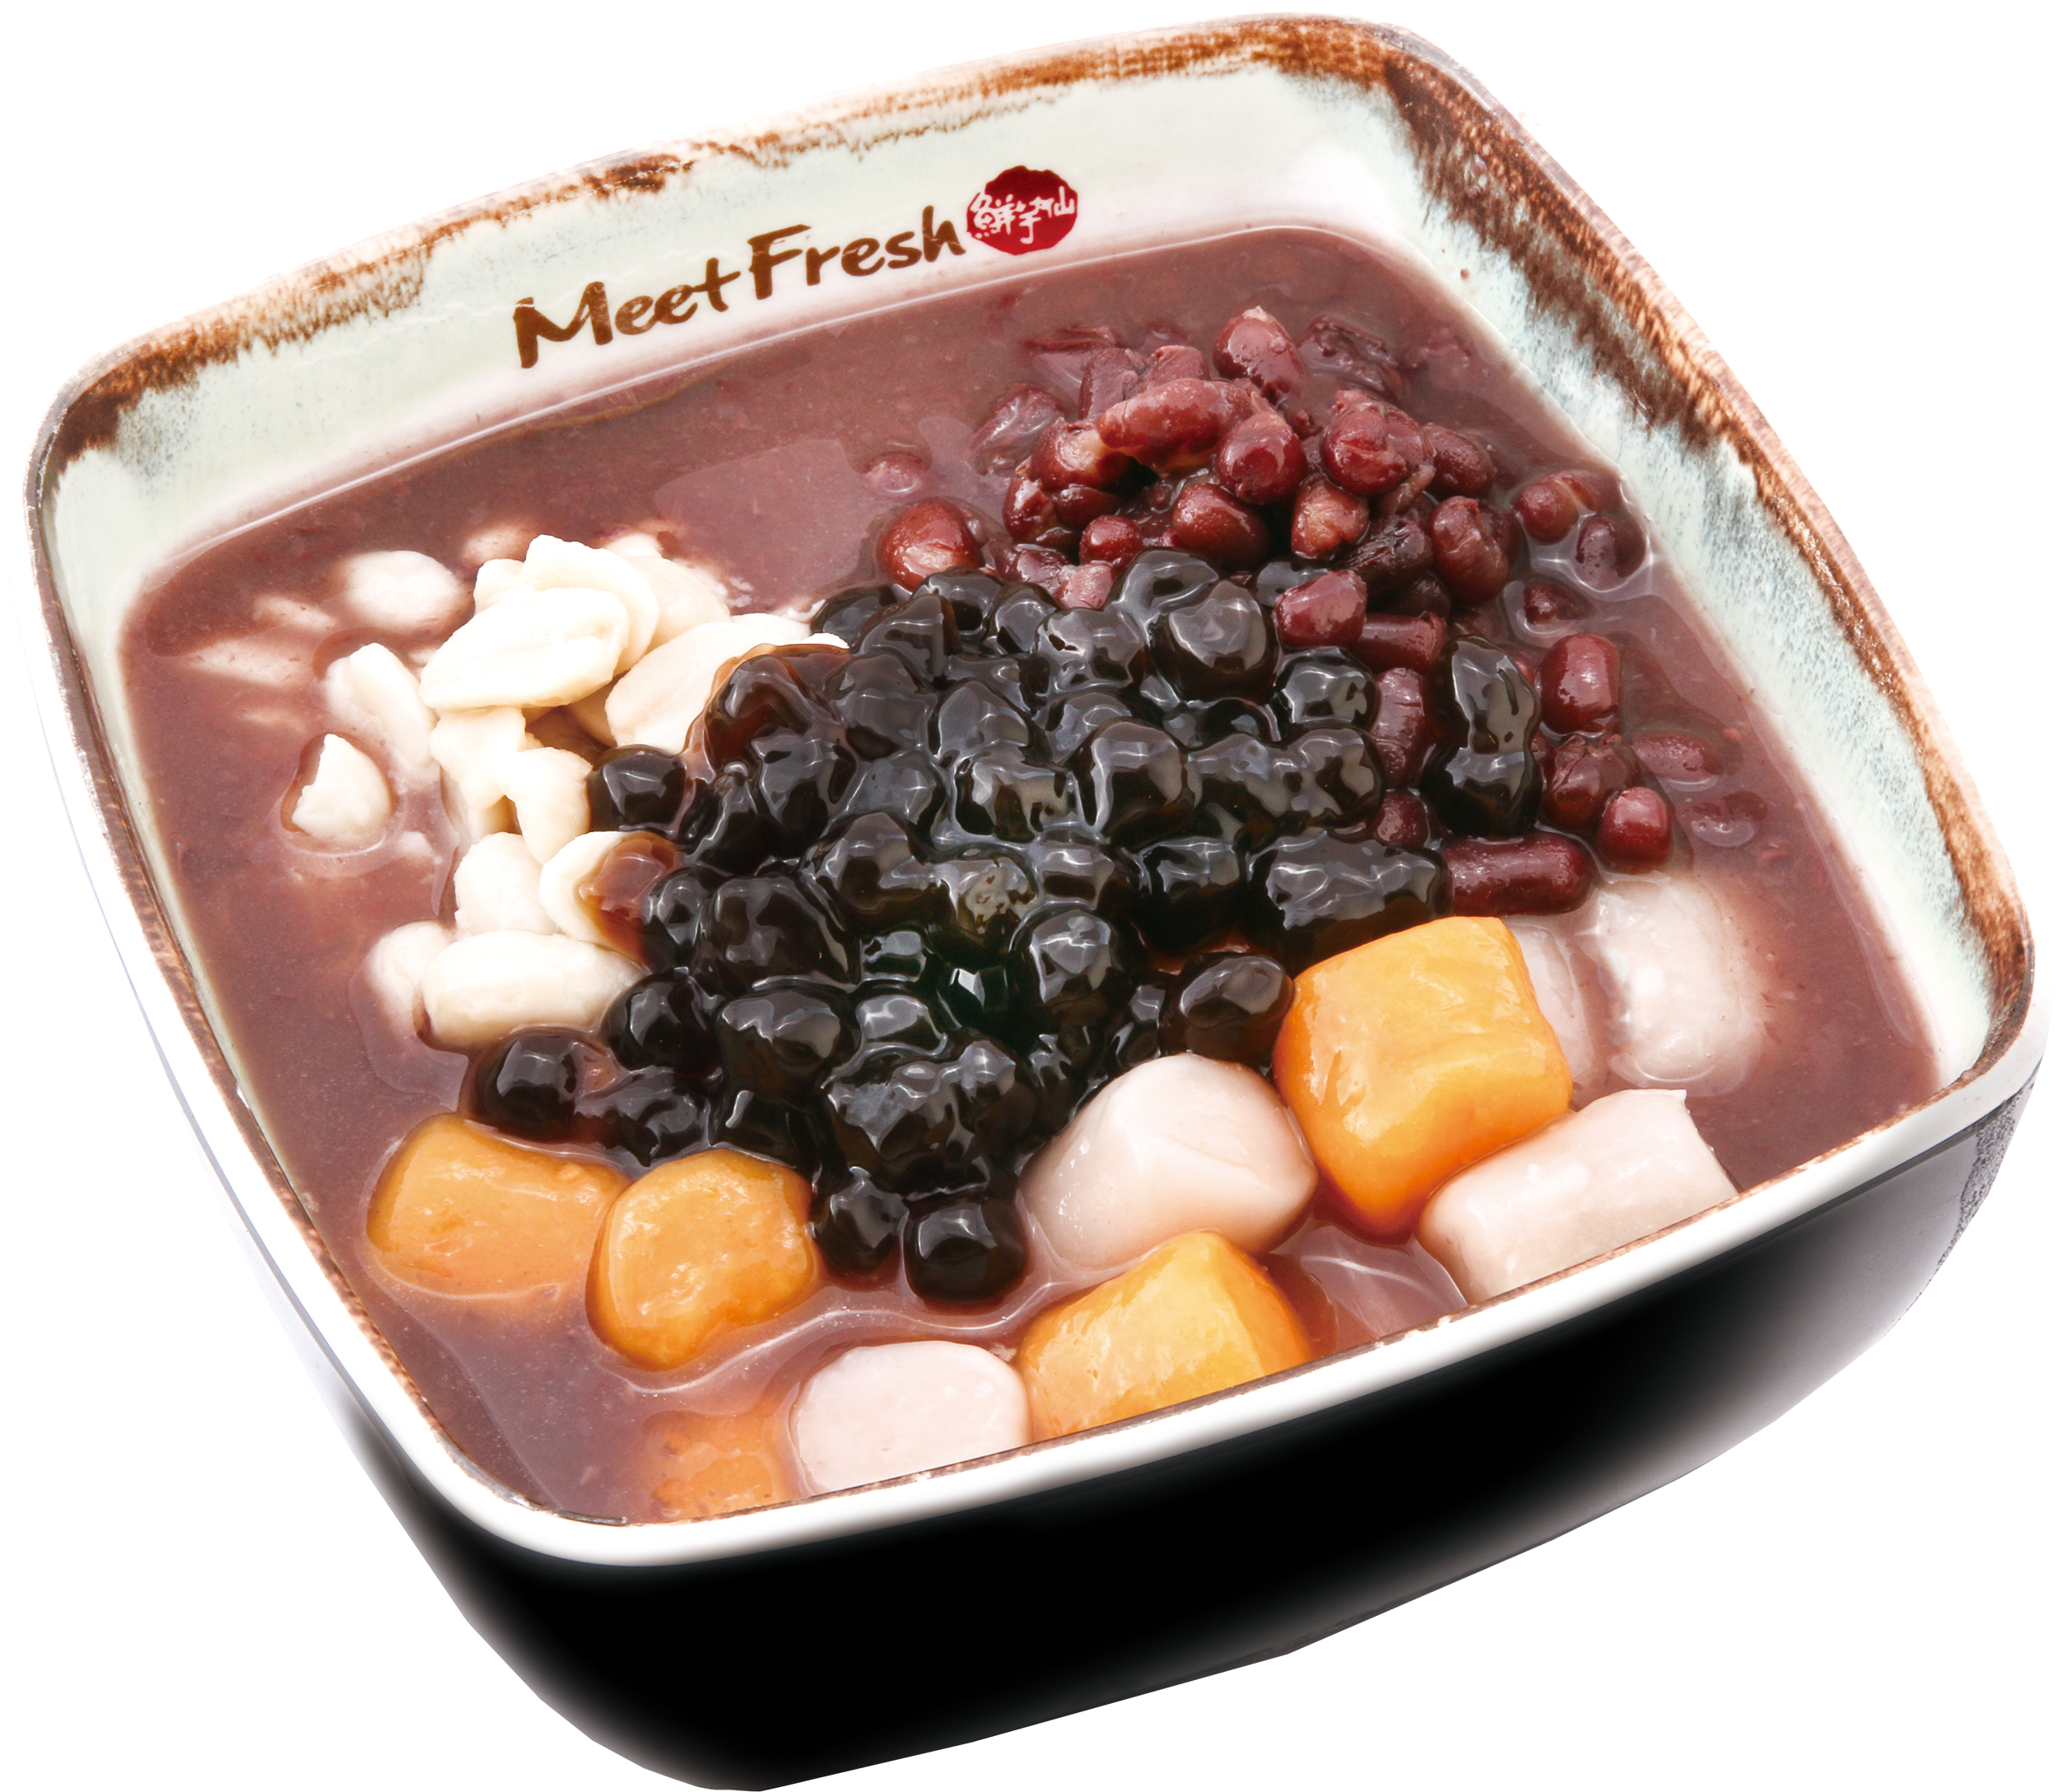 Hot Red Bean Soup Combo A - Taro Balls, Red Beans, Peanuts, Boba, Hot Red Bean Soup